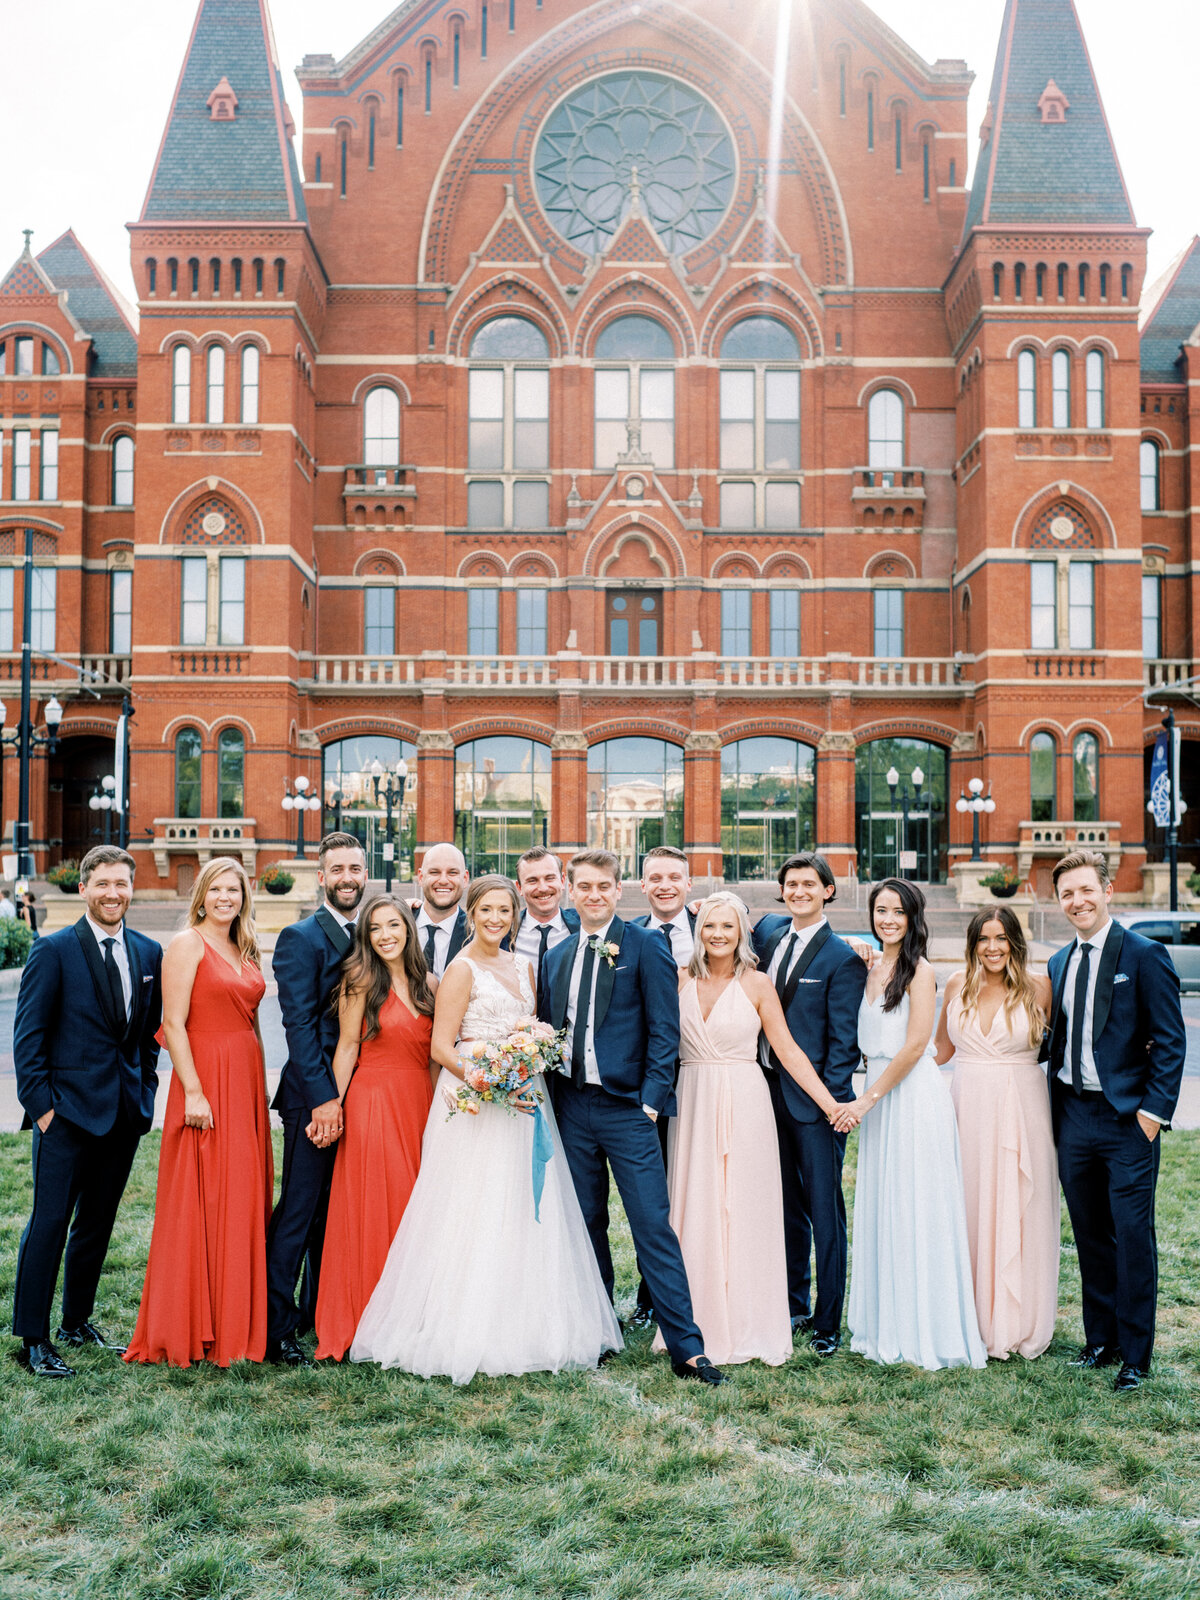 nicoleclareyphoto_alex+andy_bridal party-162